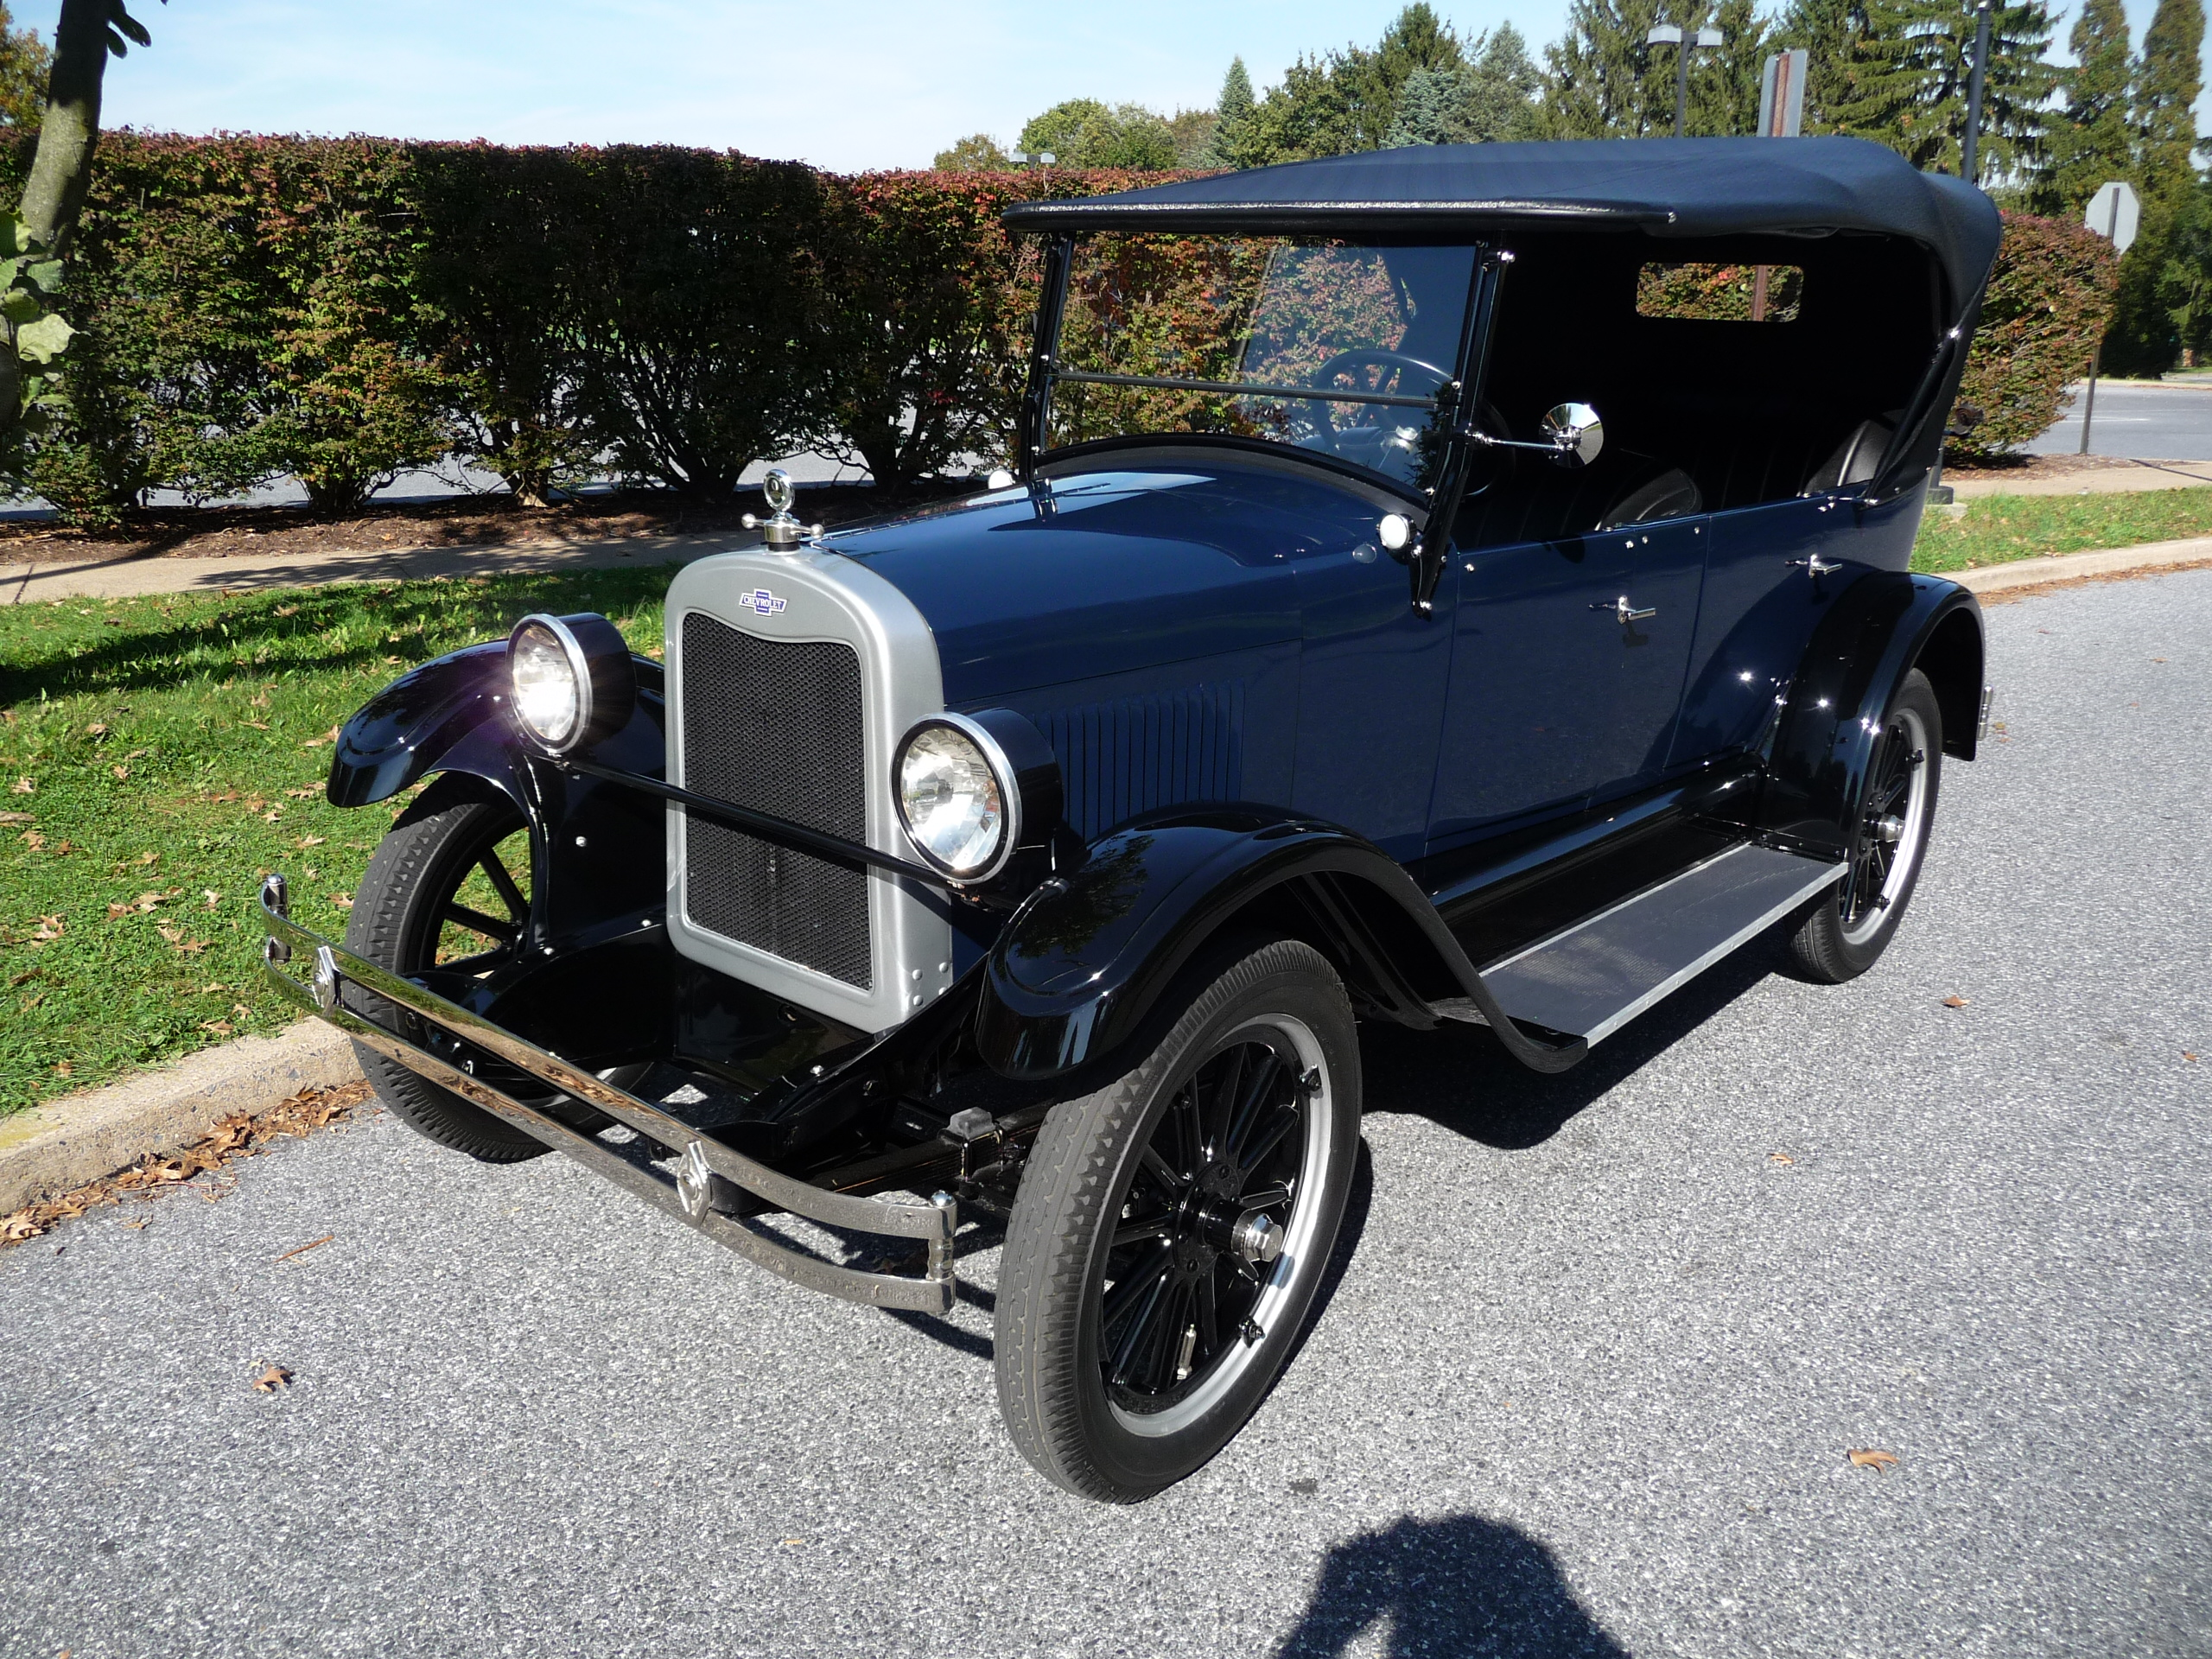 1927 Chevrolet touring Superior Series V $24,900 new photos added 02 ...